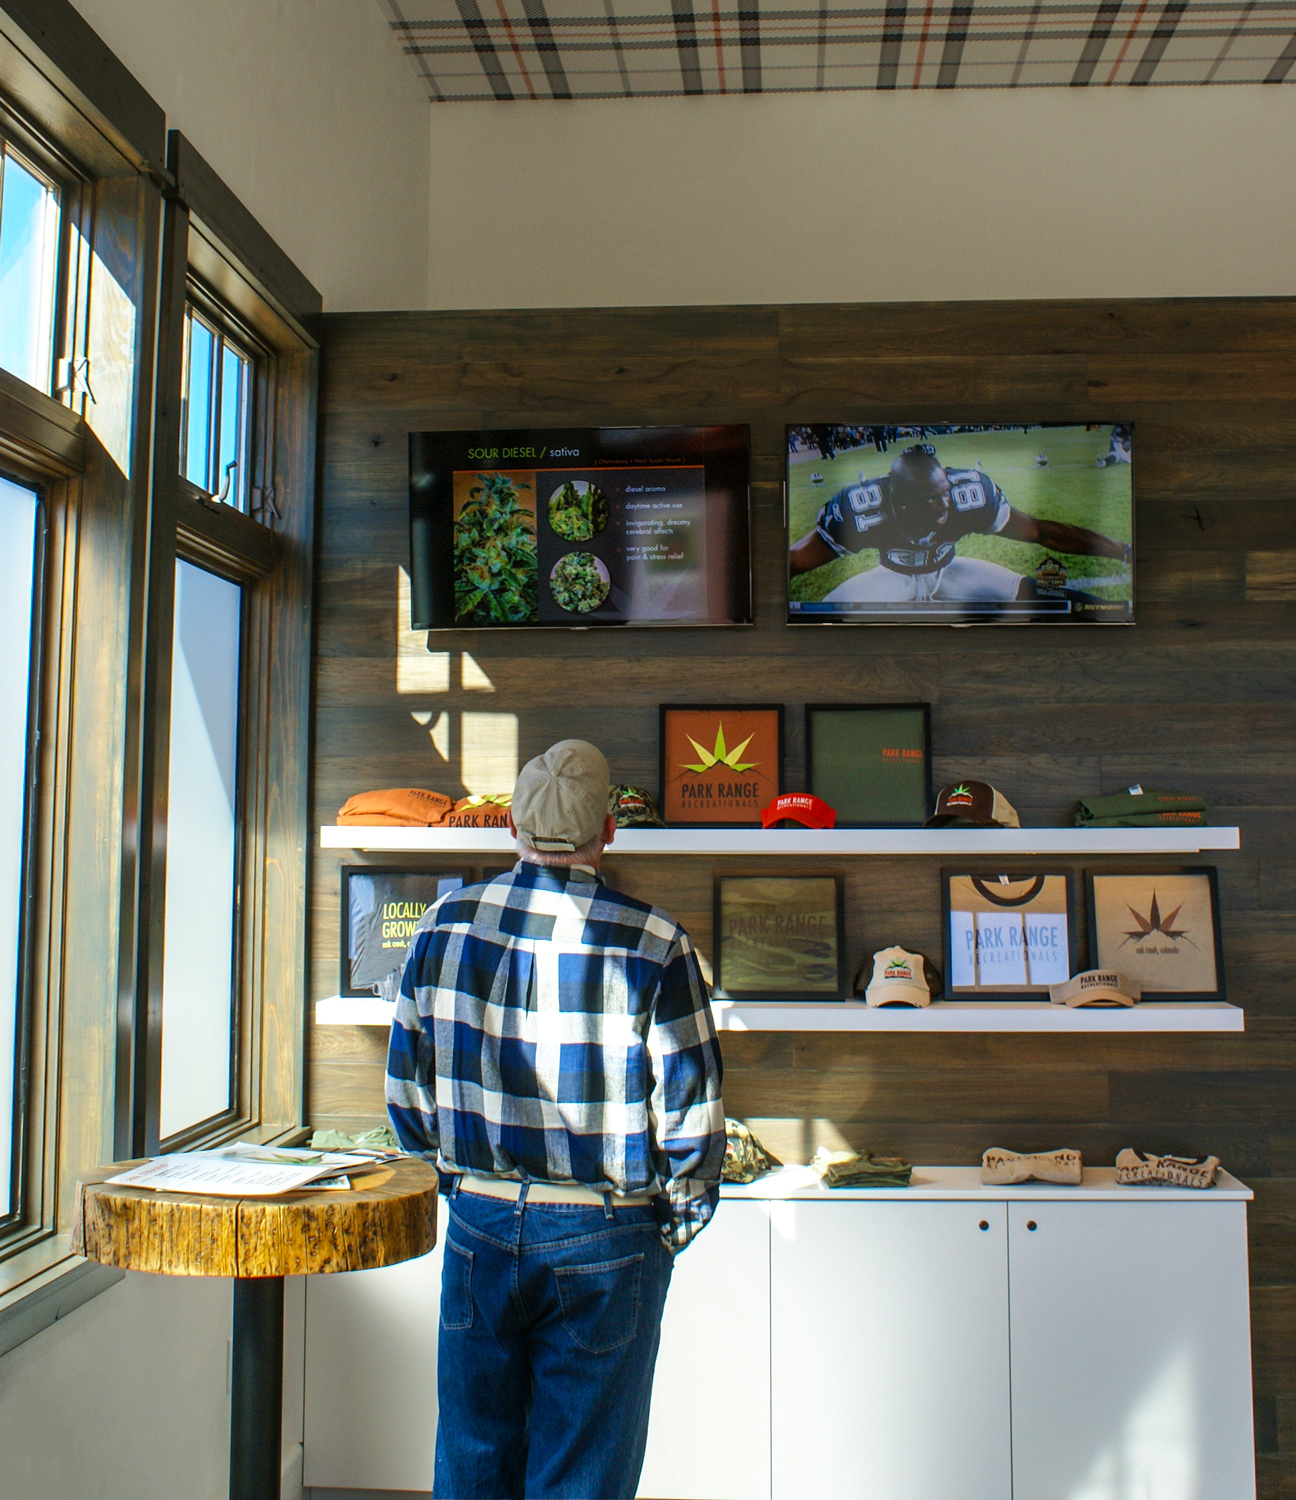 High tech: A retail guide to in-store tech